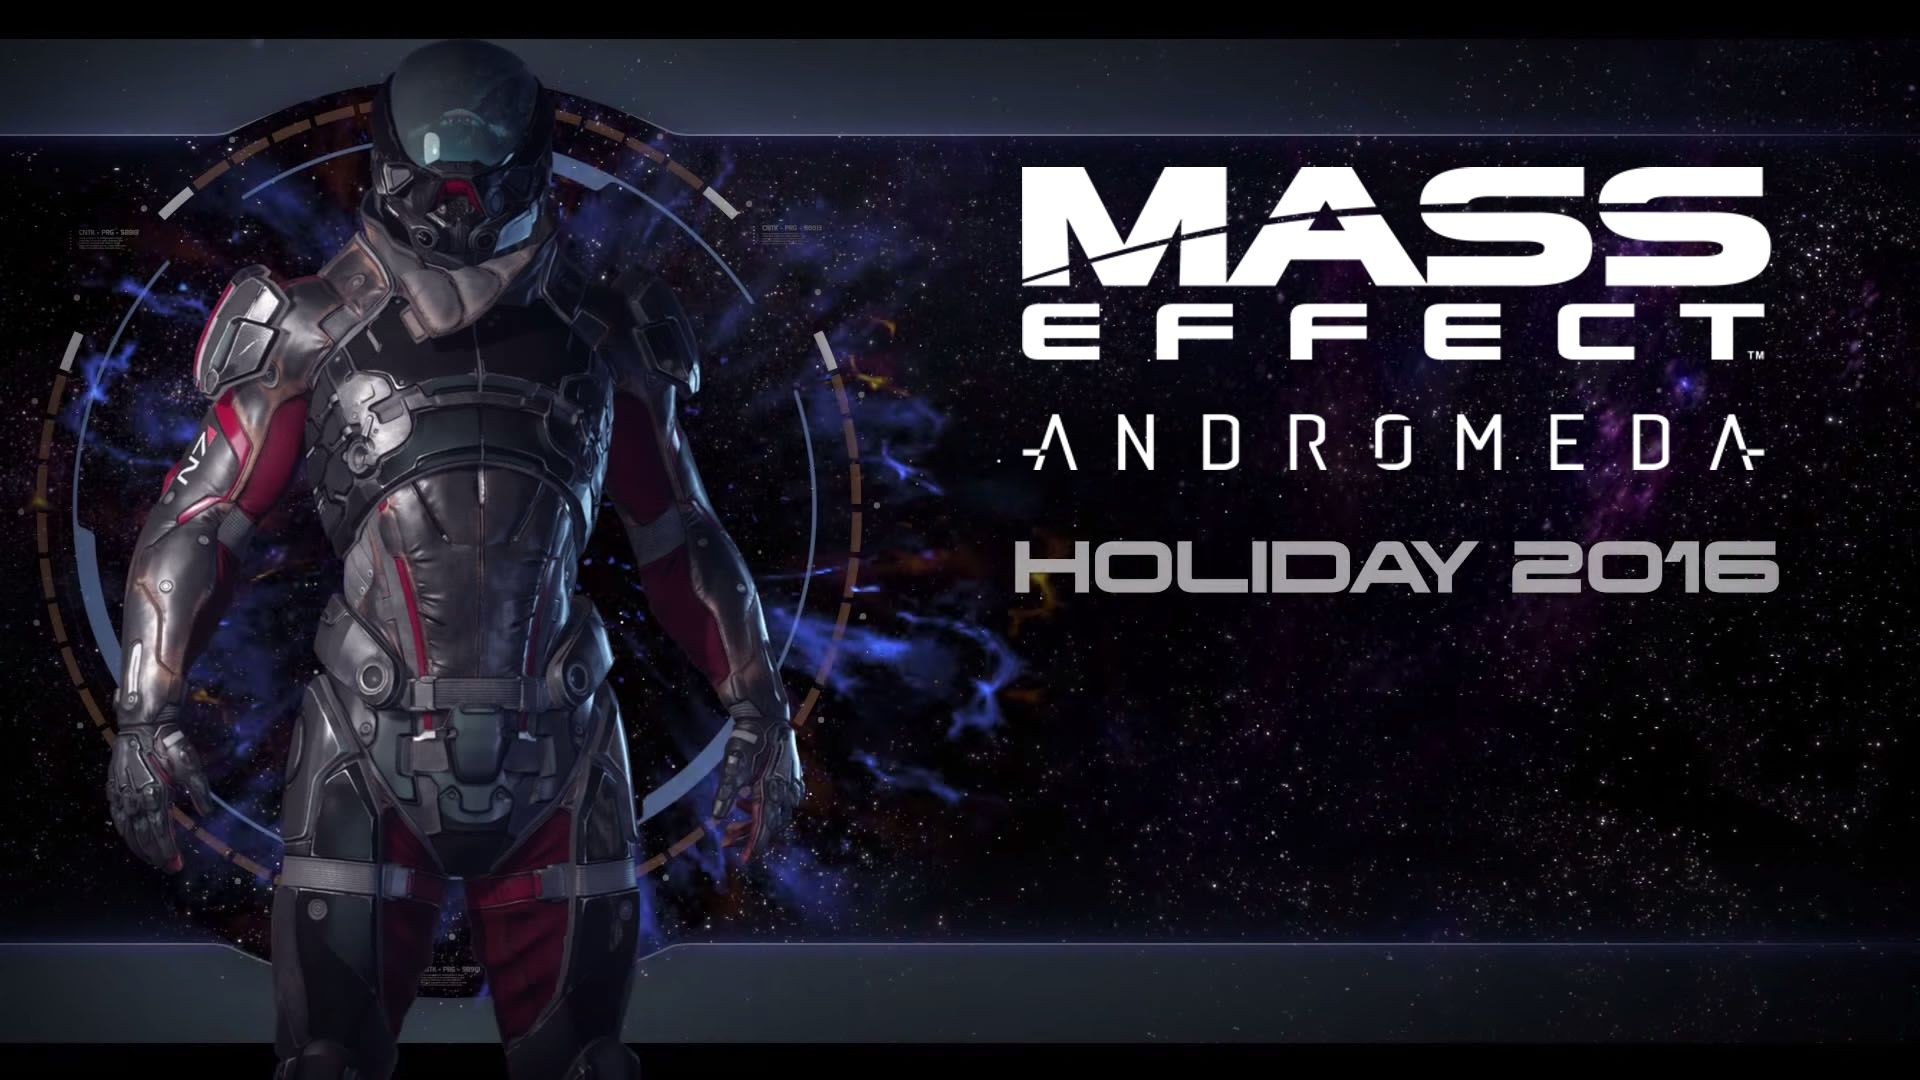 Mass Effect Andromeda 1920x1080: Mass Effect Andromeda Wallpaper